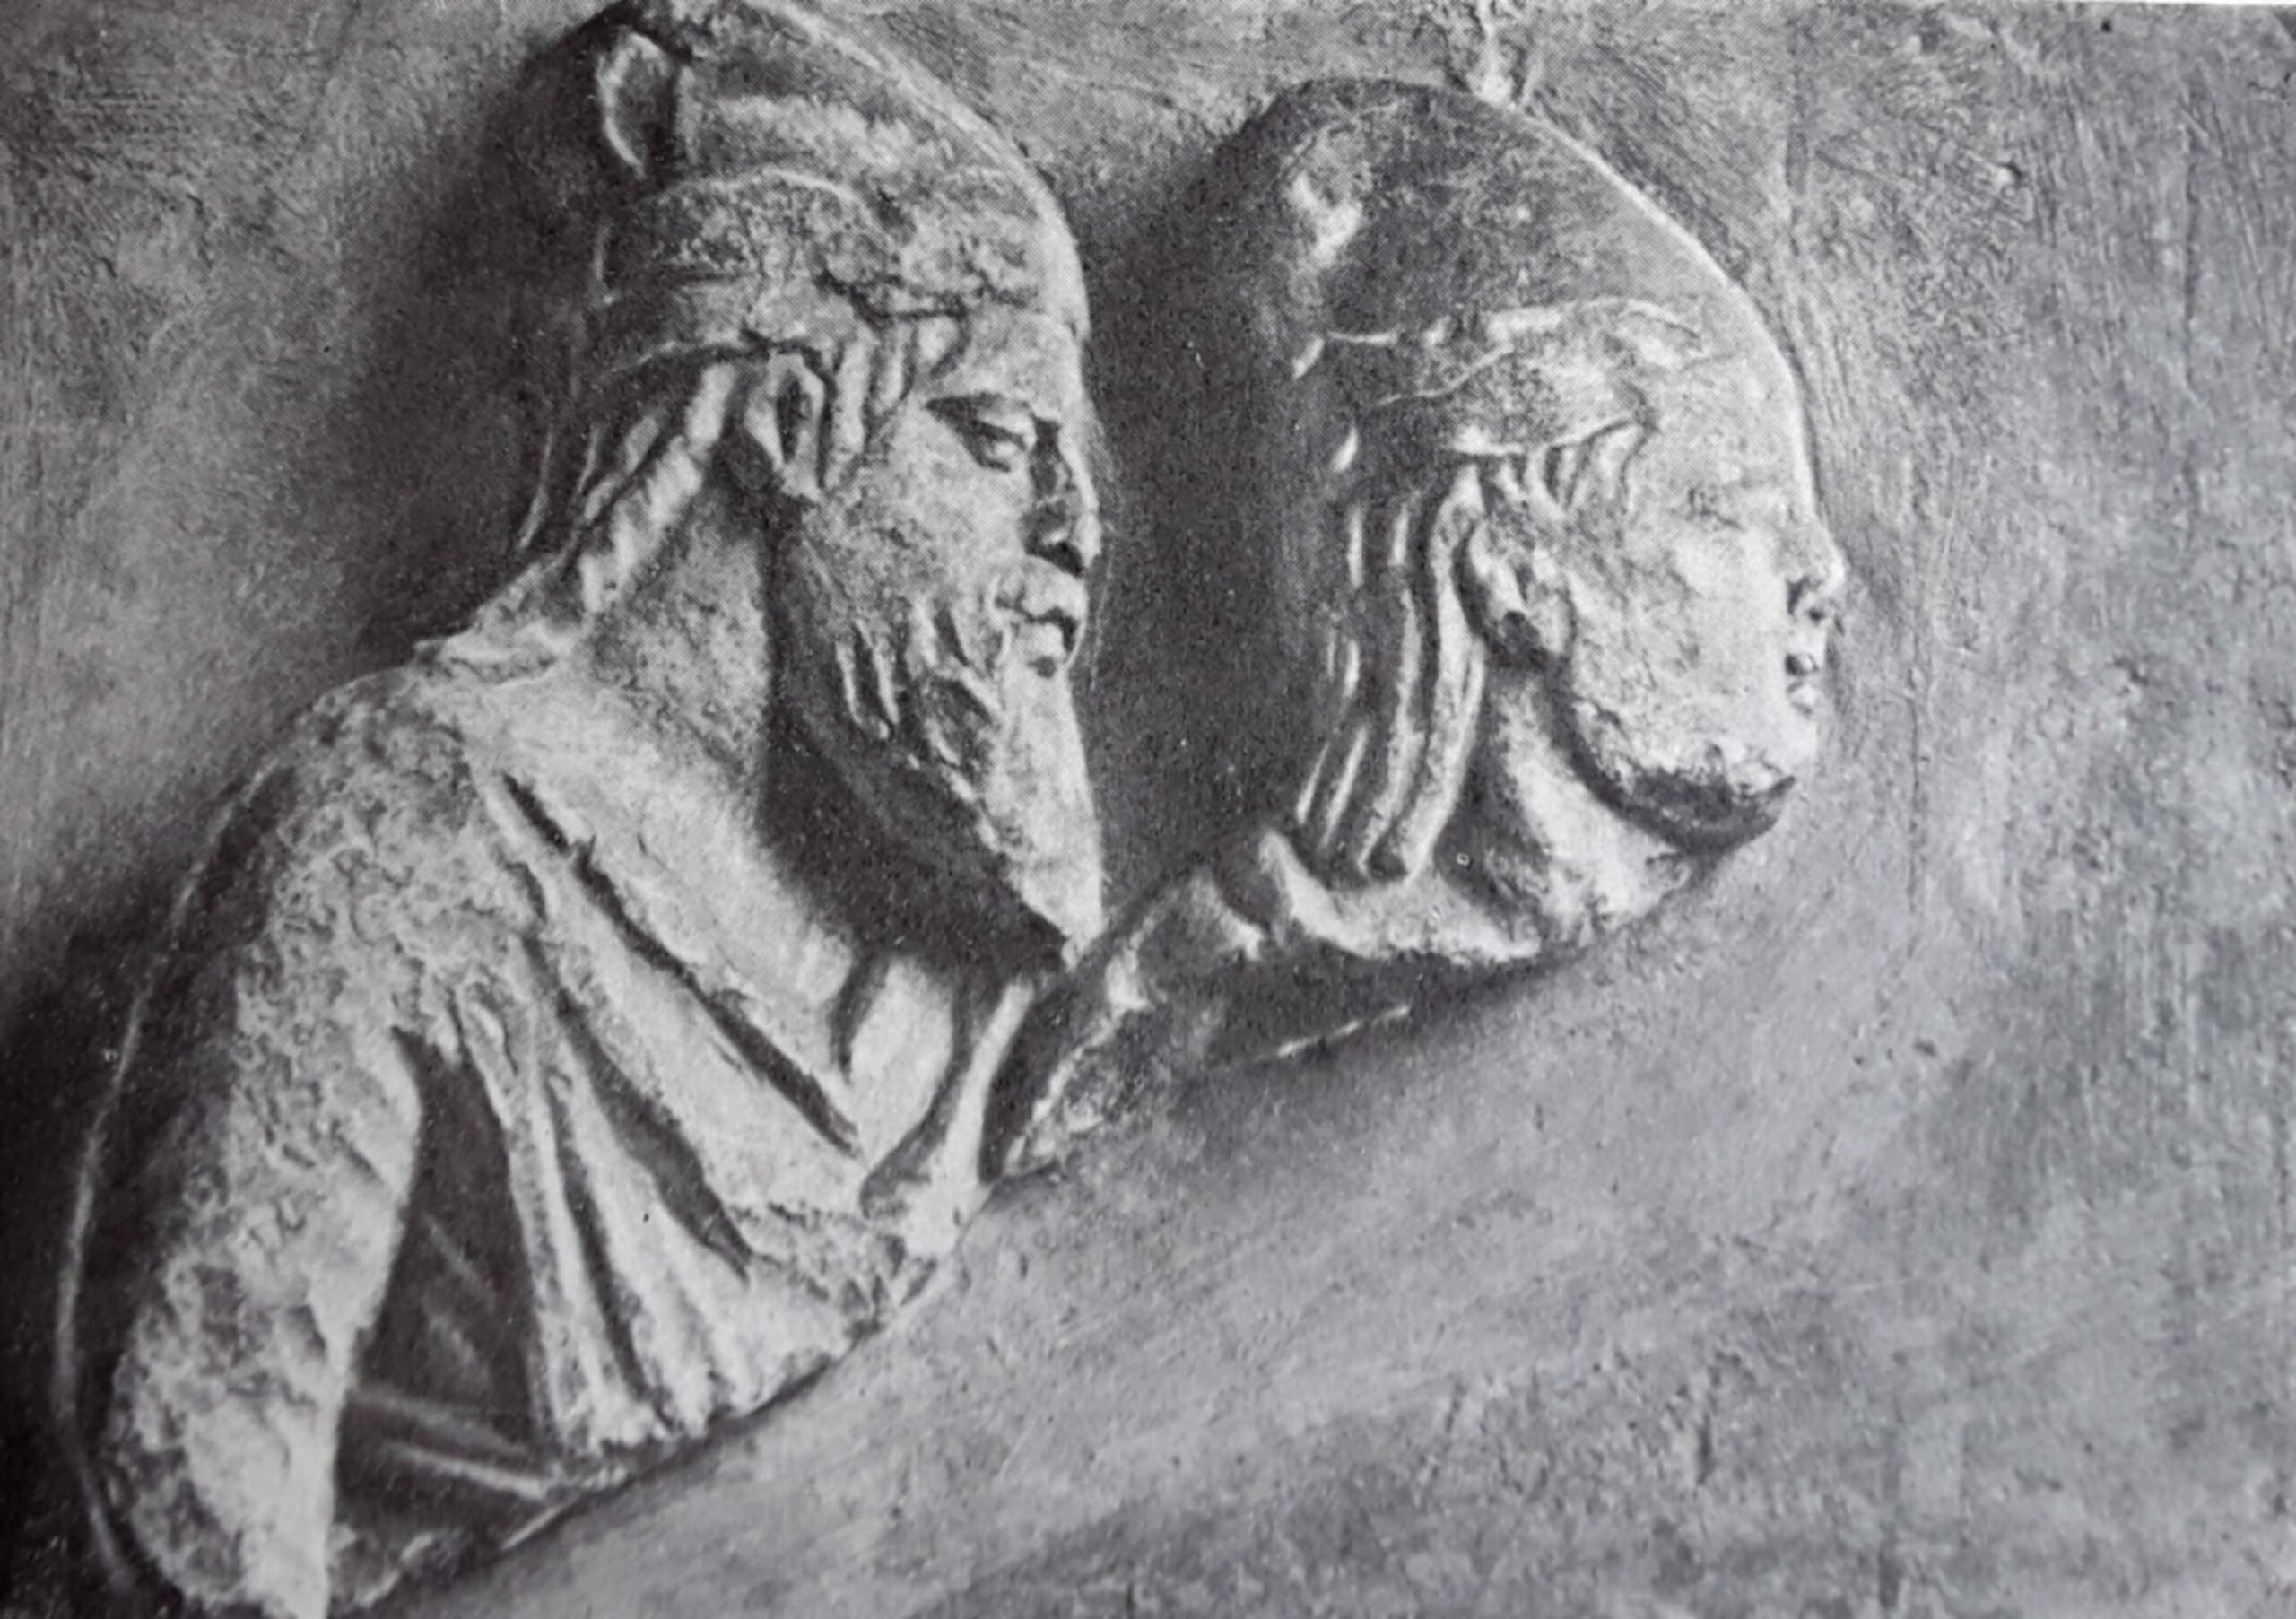 Relief with the image of Skilur and Pallak